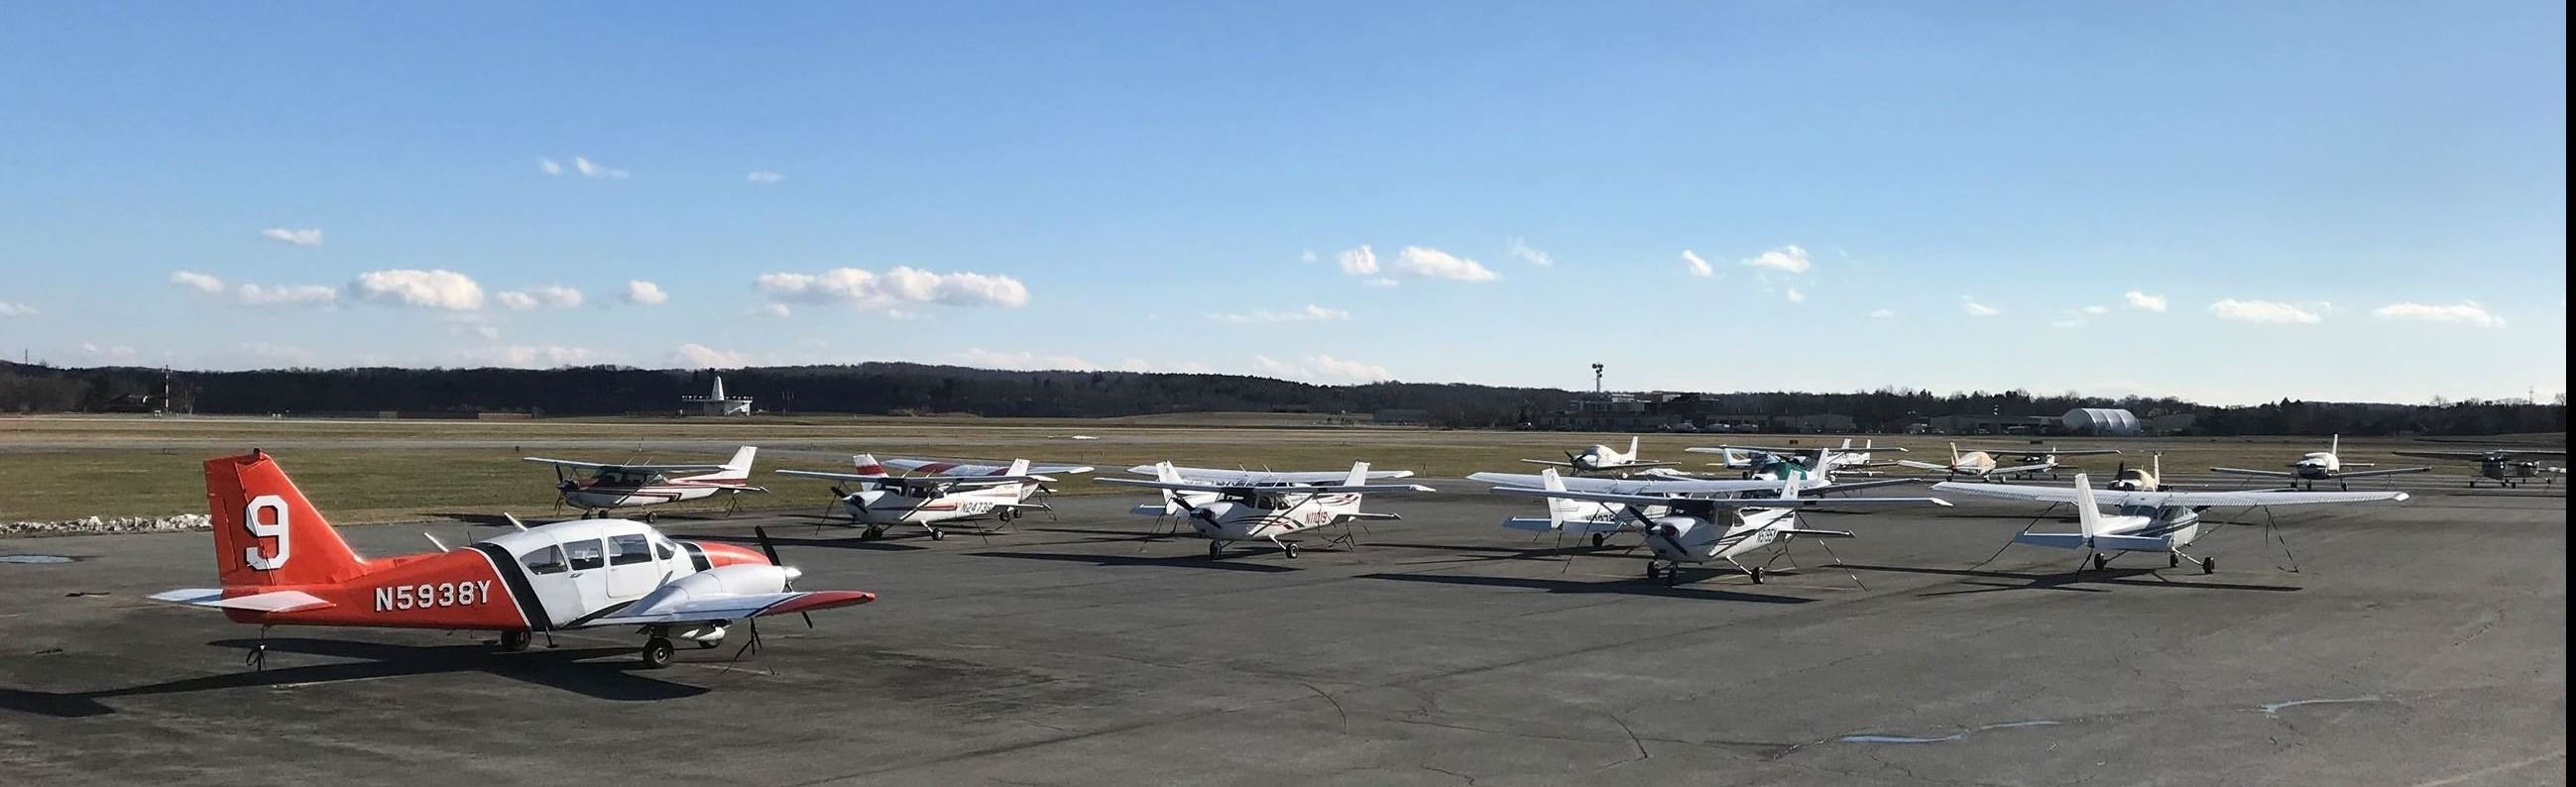 Small Airplanes on the Runway